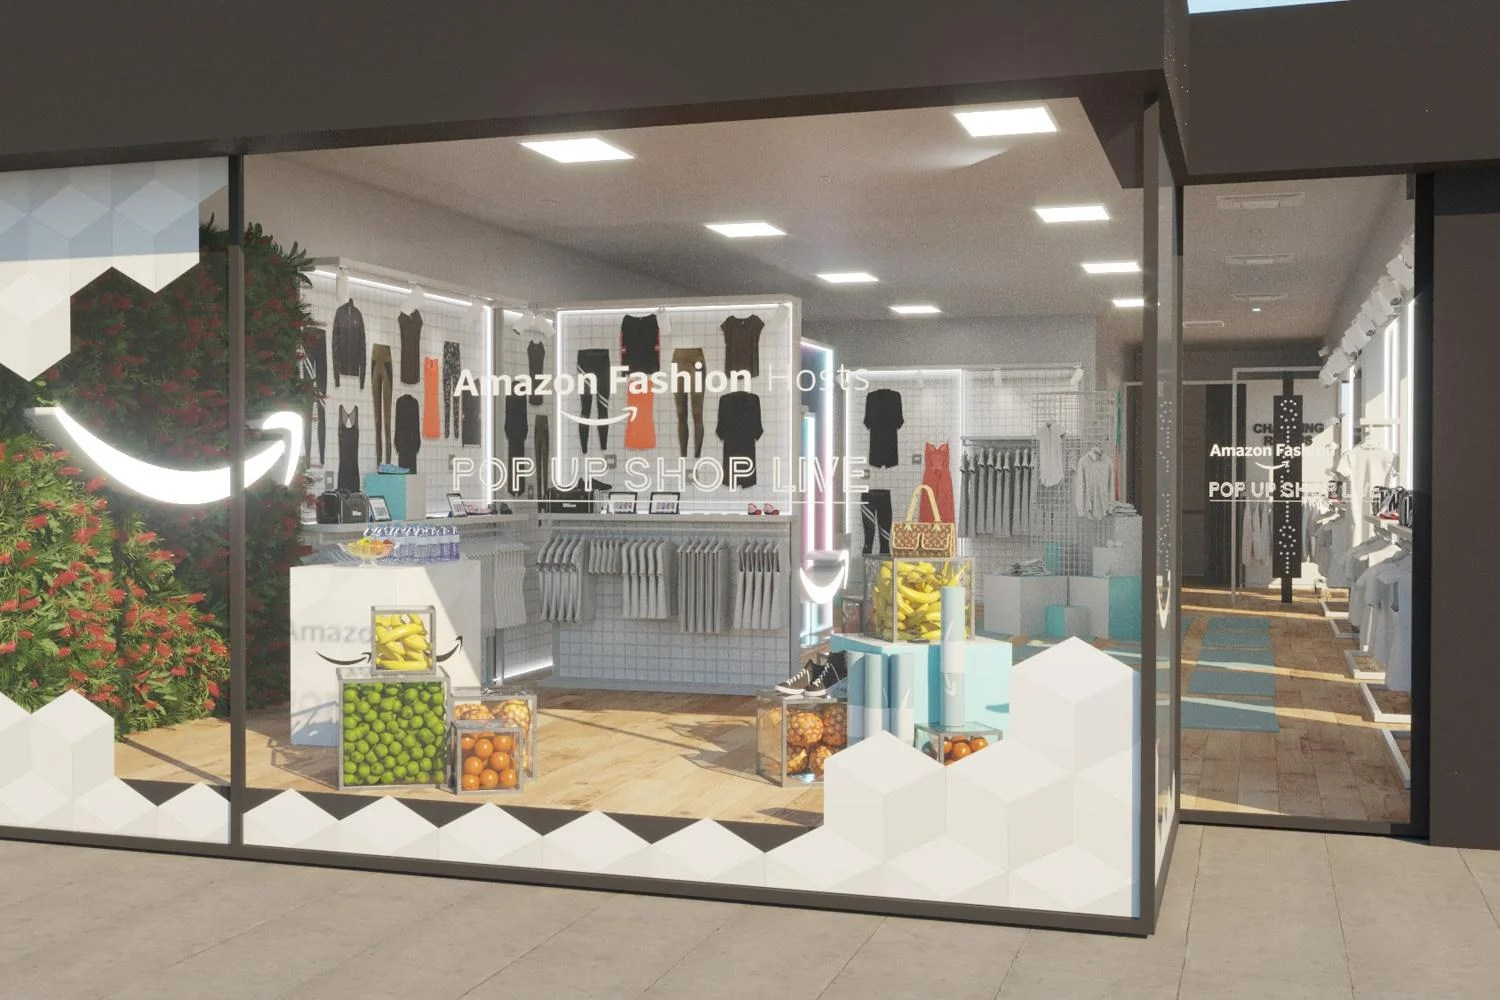 Amazon Fashion Are Opening A Pop Up Store On Baker Street